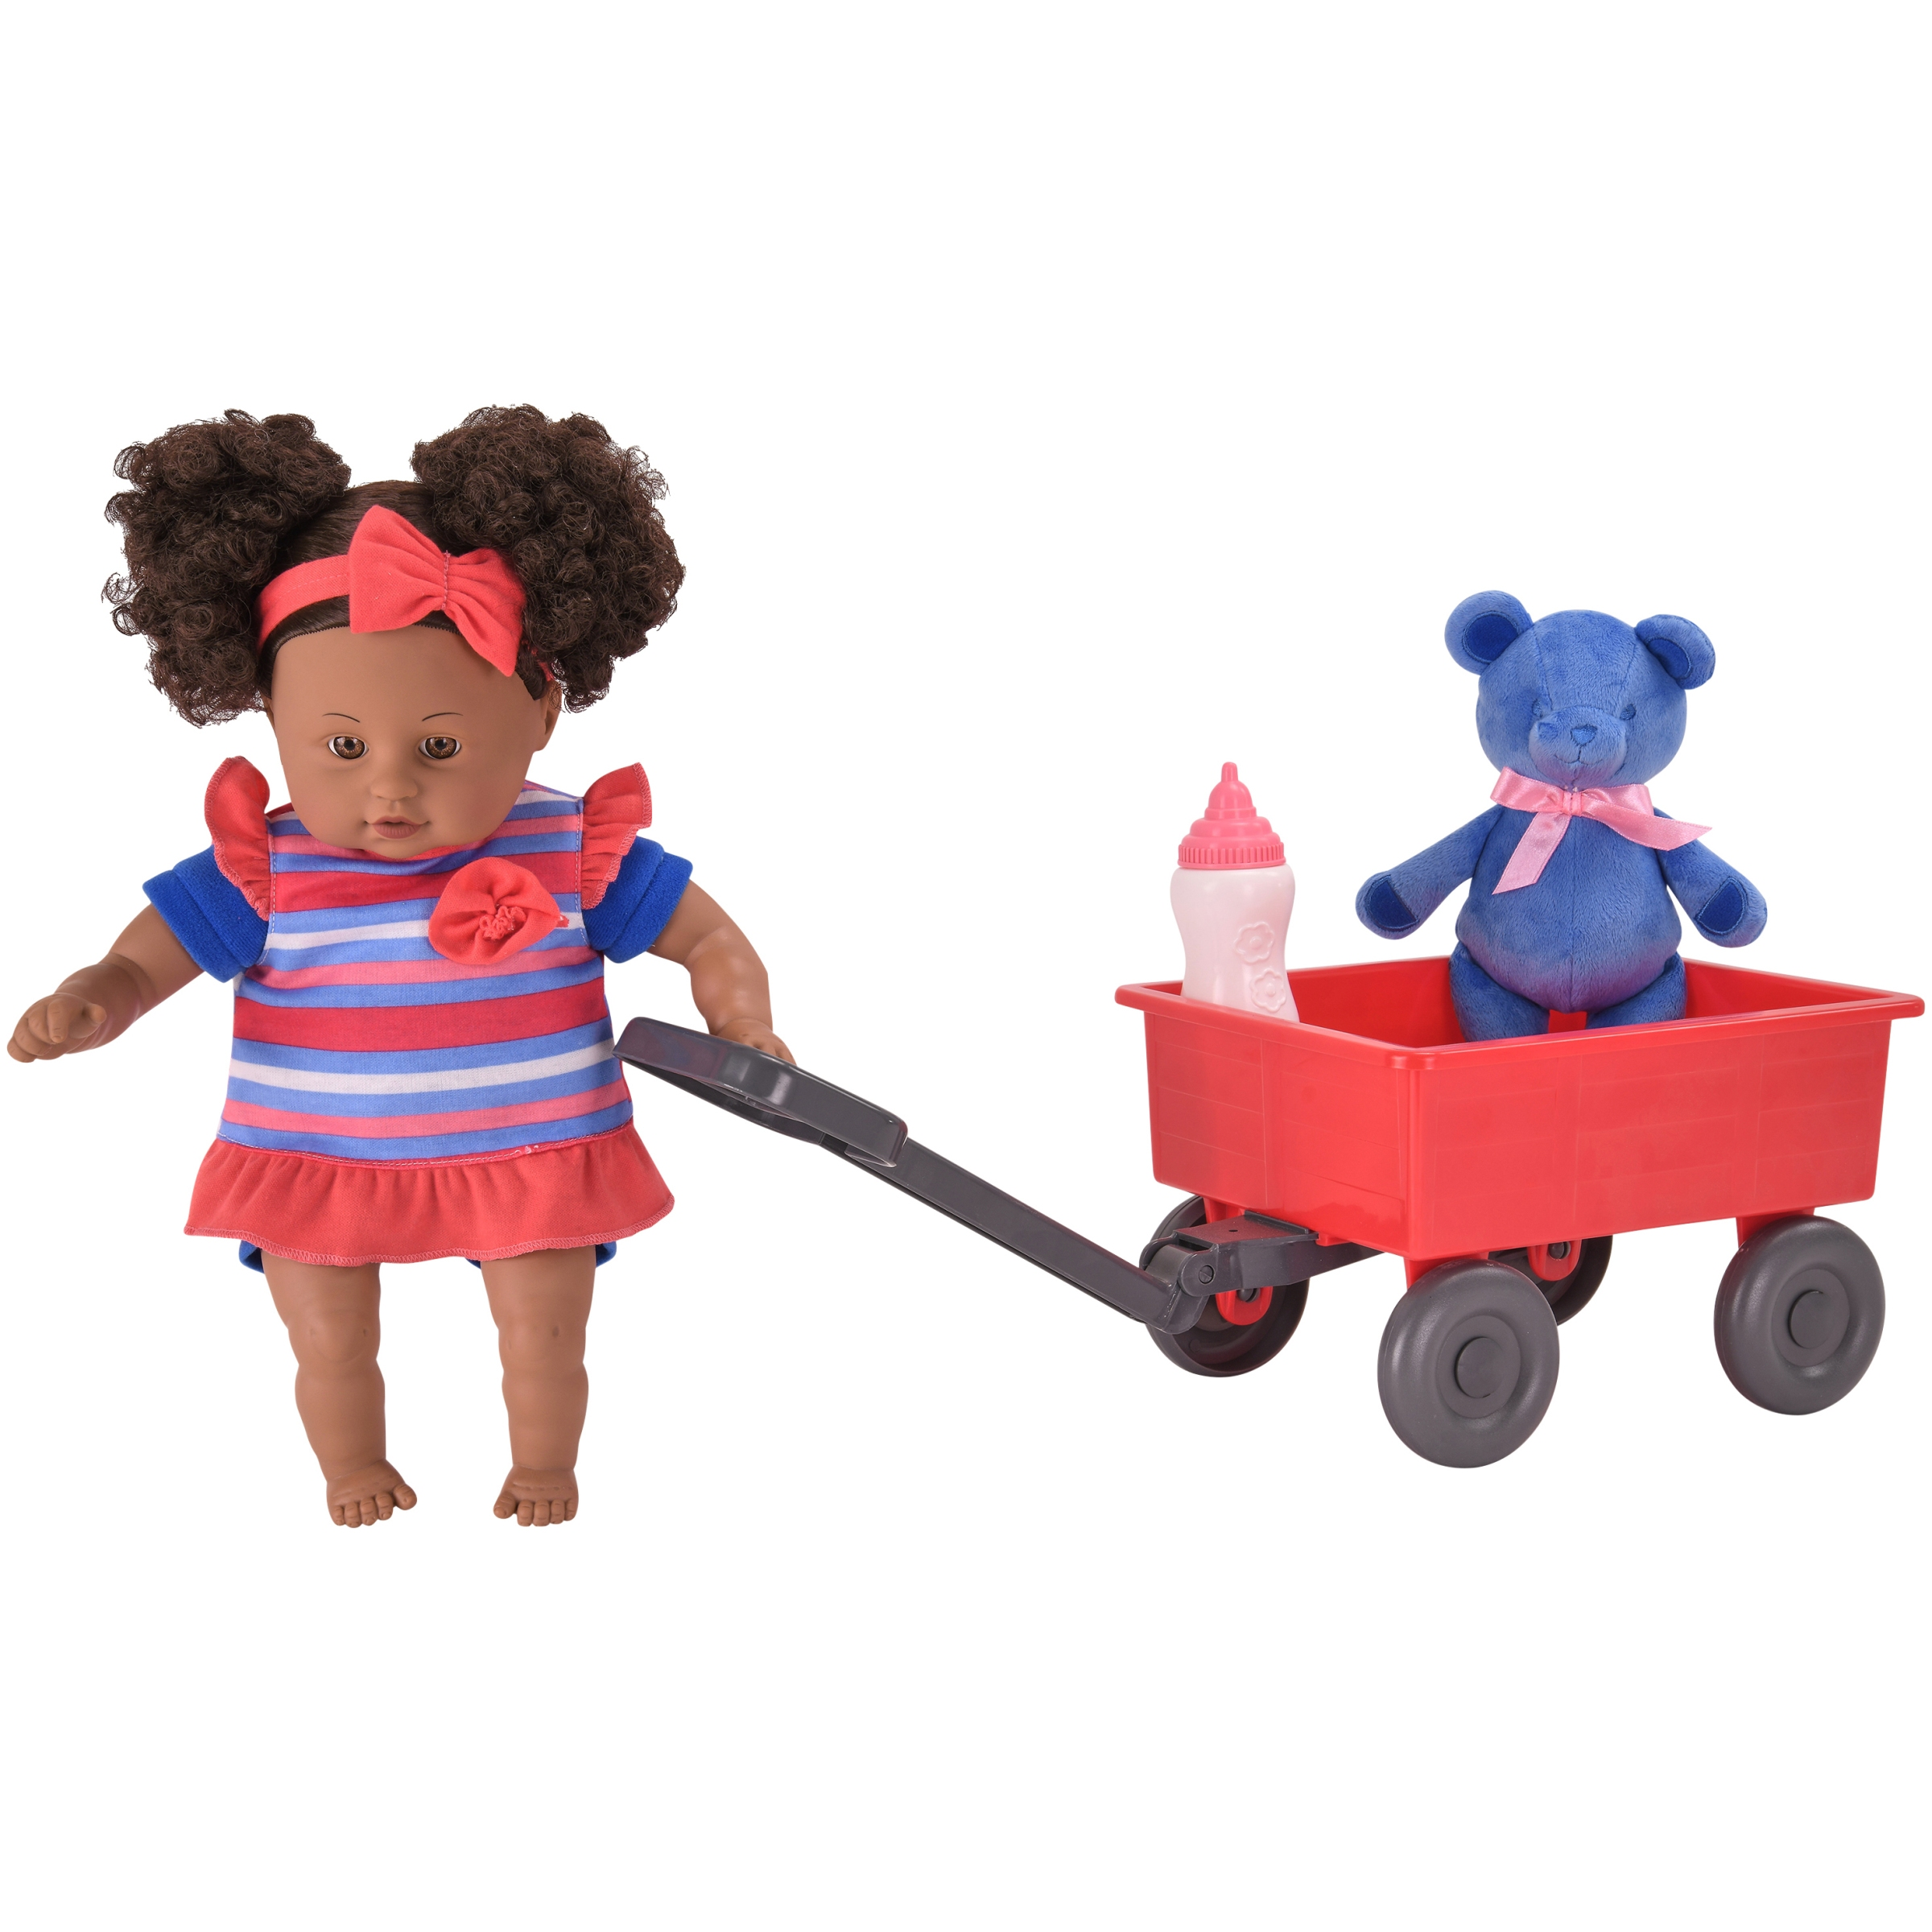 "My Sweet Love 13"" 4-Piece Red & Blue Baby Doll and Wagon Play Set"